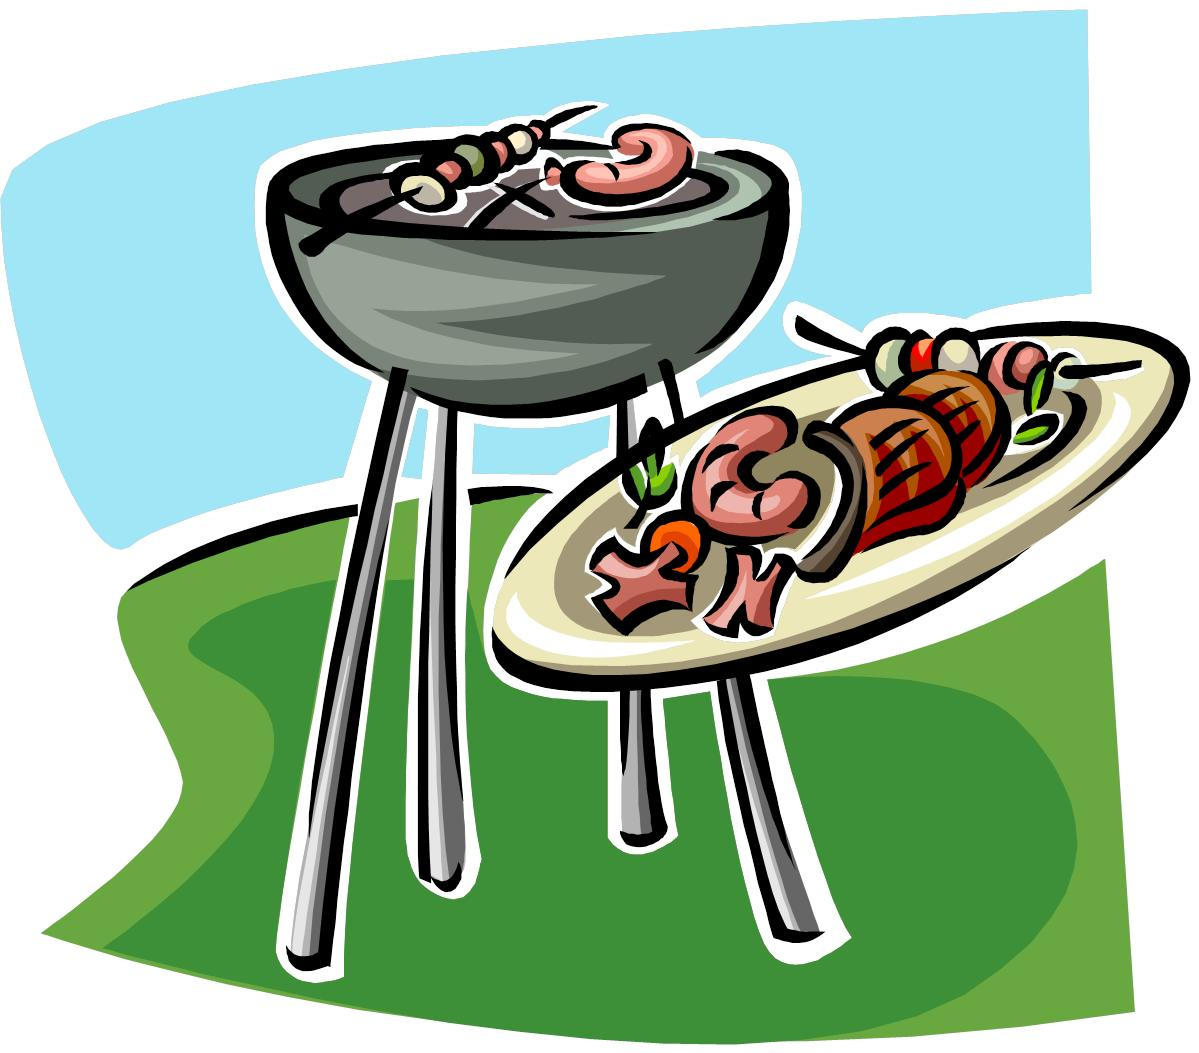 backyard barbecue clip art backyard backyard ideas blog rh oluyue com cookout clipart black and white clipart cookout food